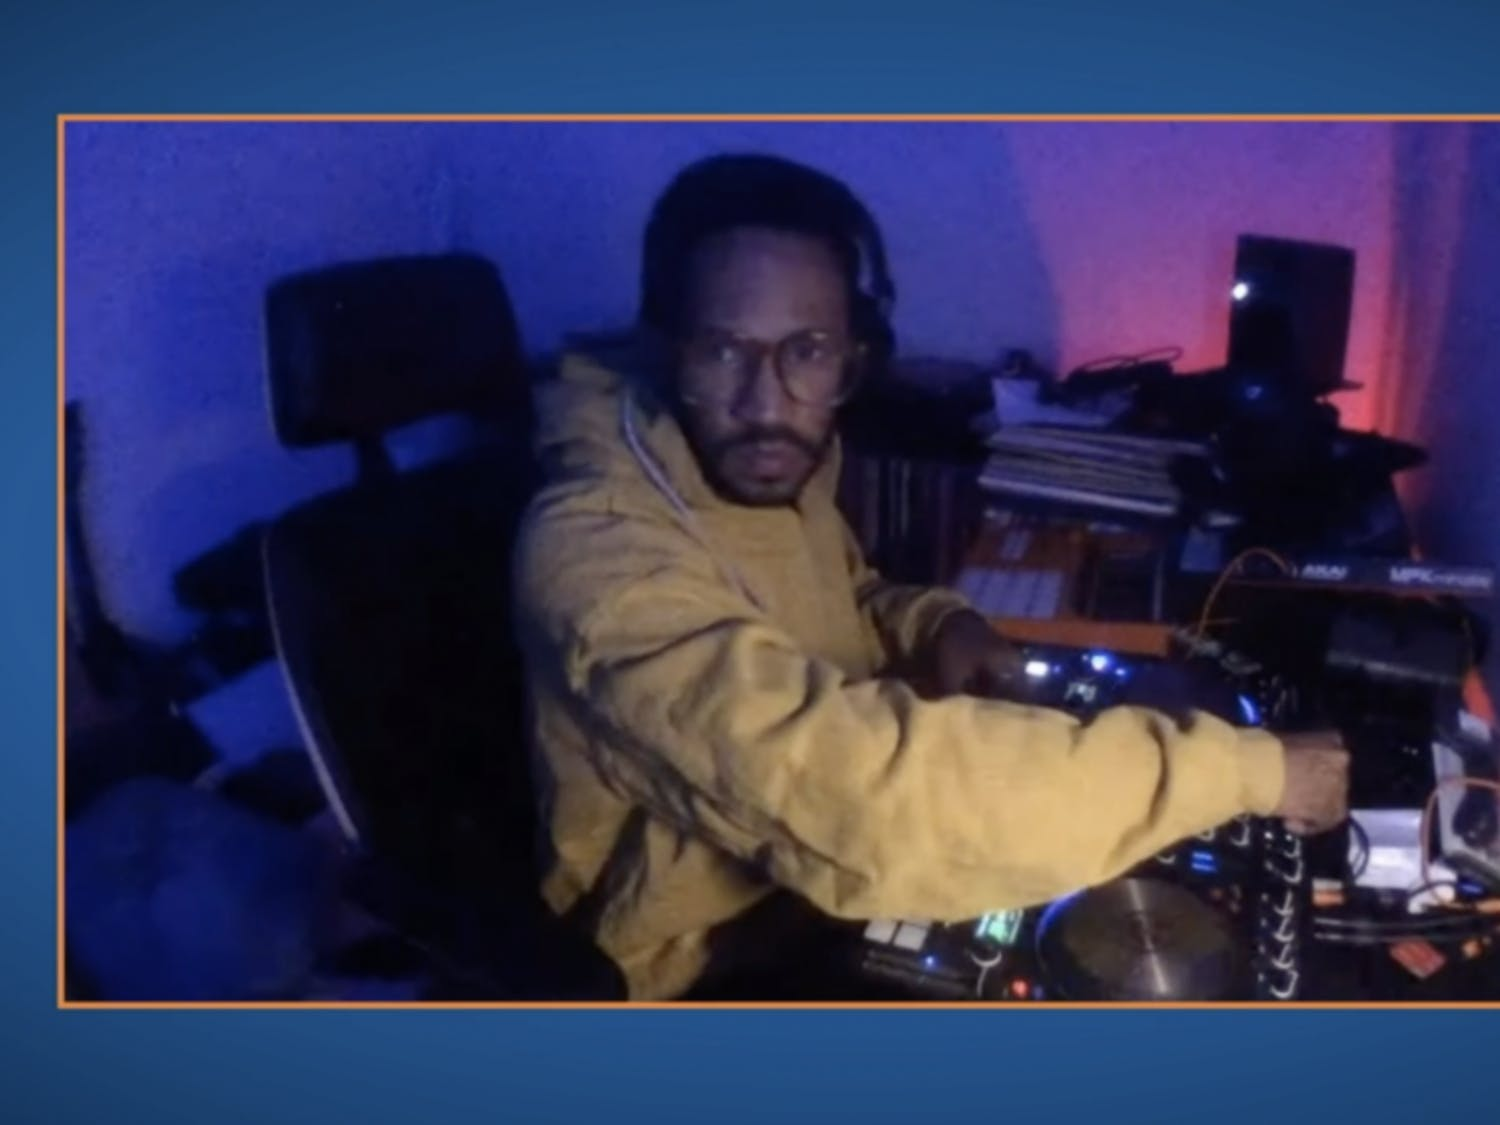 Viewers tuned in to a Wednesday night Vimeo live stream of the show, which featured Haitian-Canadian DJ Kaytranada and New Orleans R&B artist Lucky Daye.